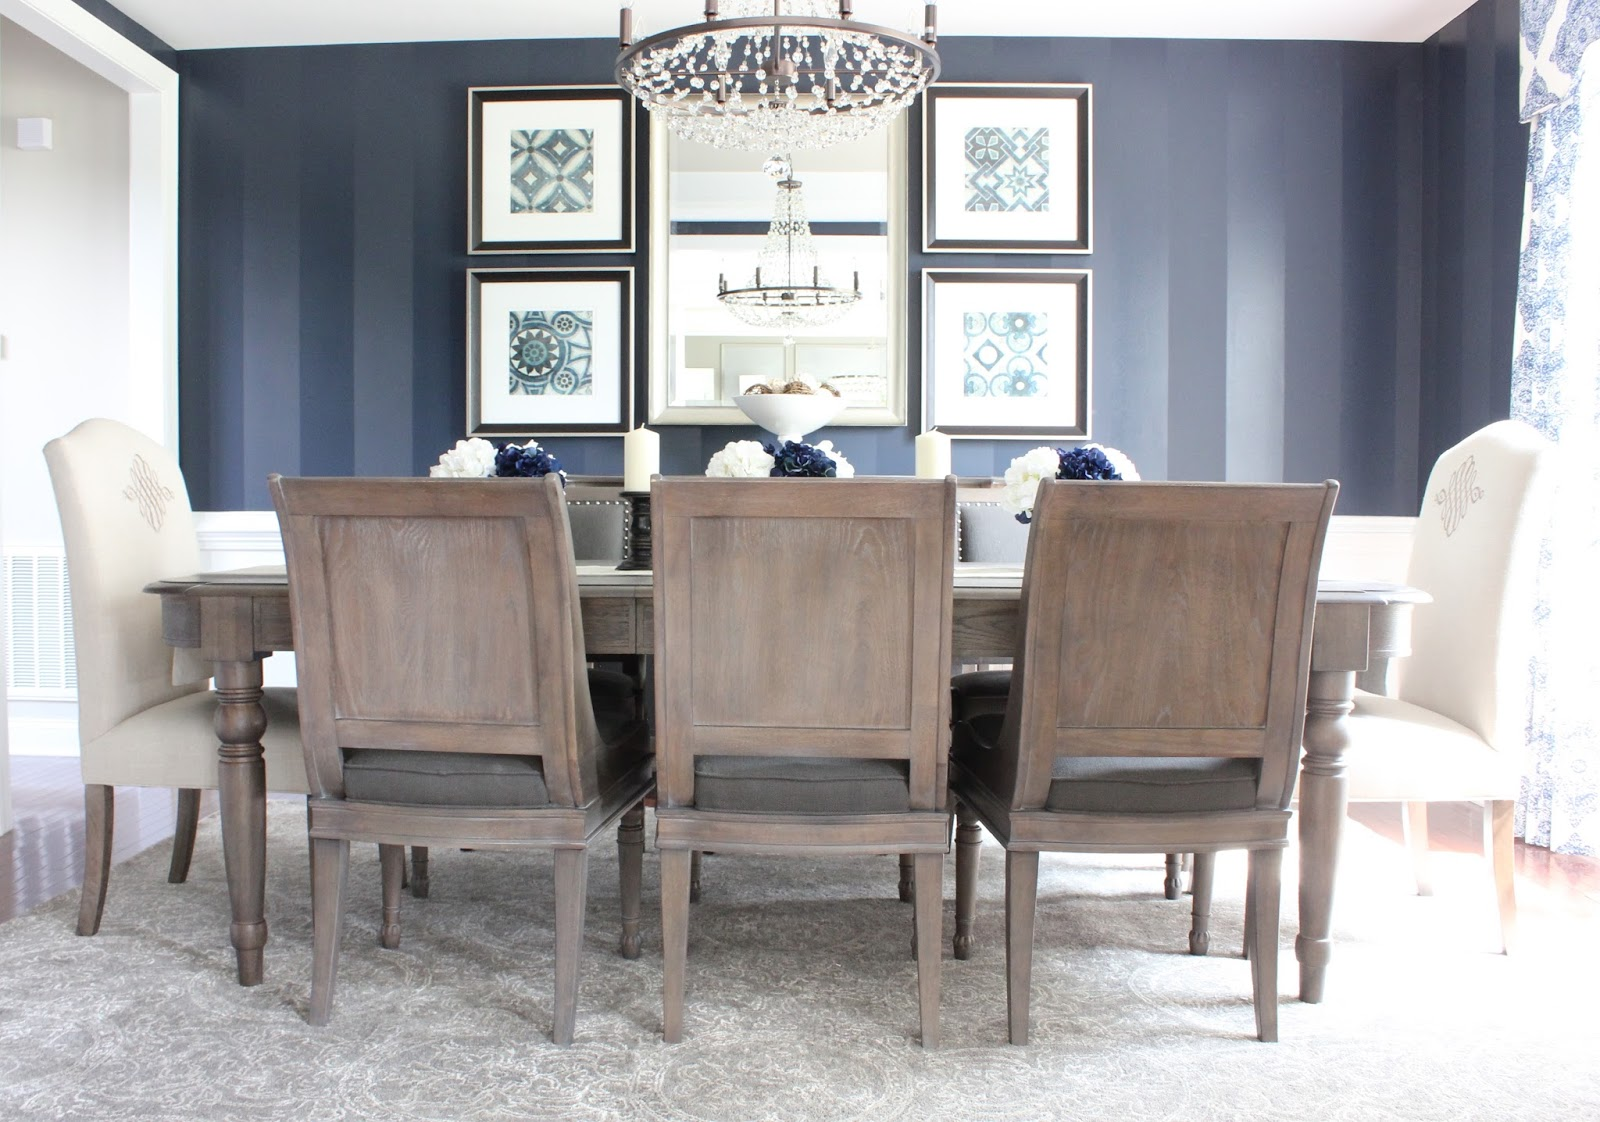 decorating with color new south home dark navy blue stripes make the statement in our client s dining room